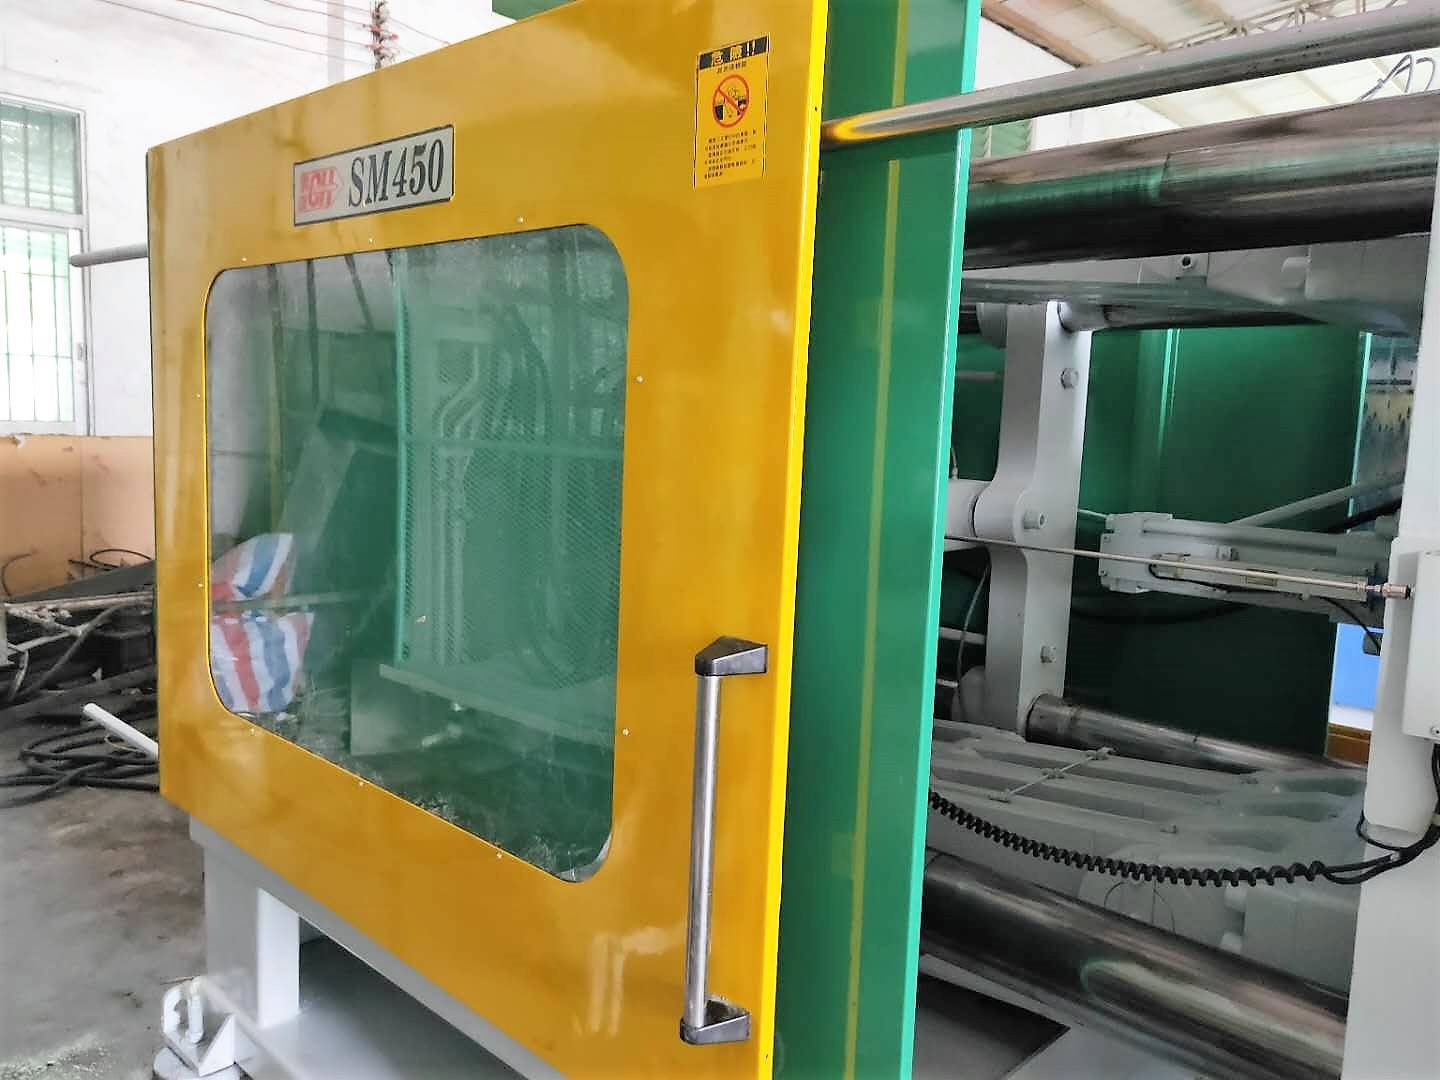 Taiwan Chen Hsong Supermaster SM450 used Injection Molding Machine Featured Image